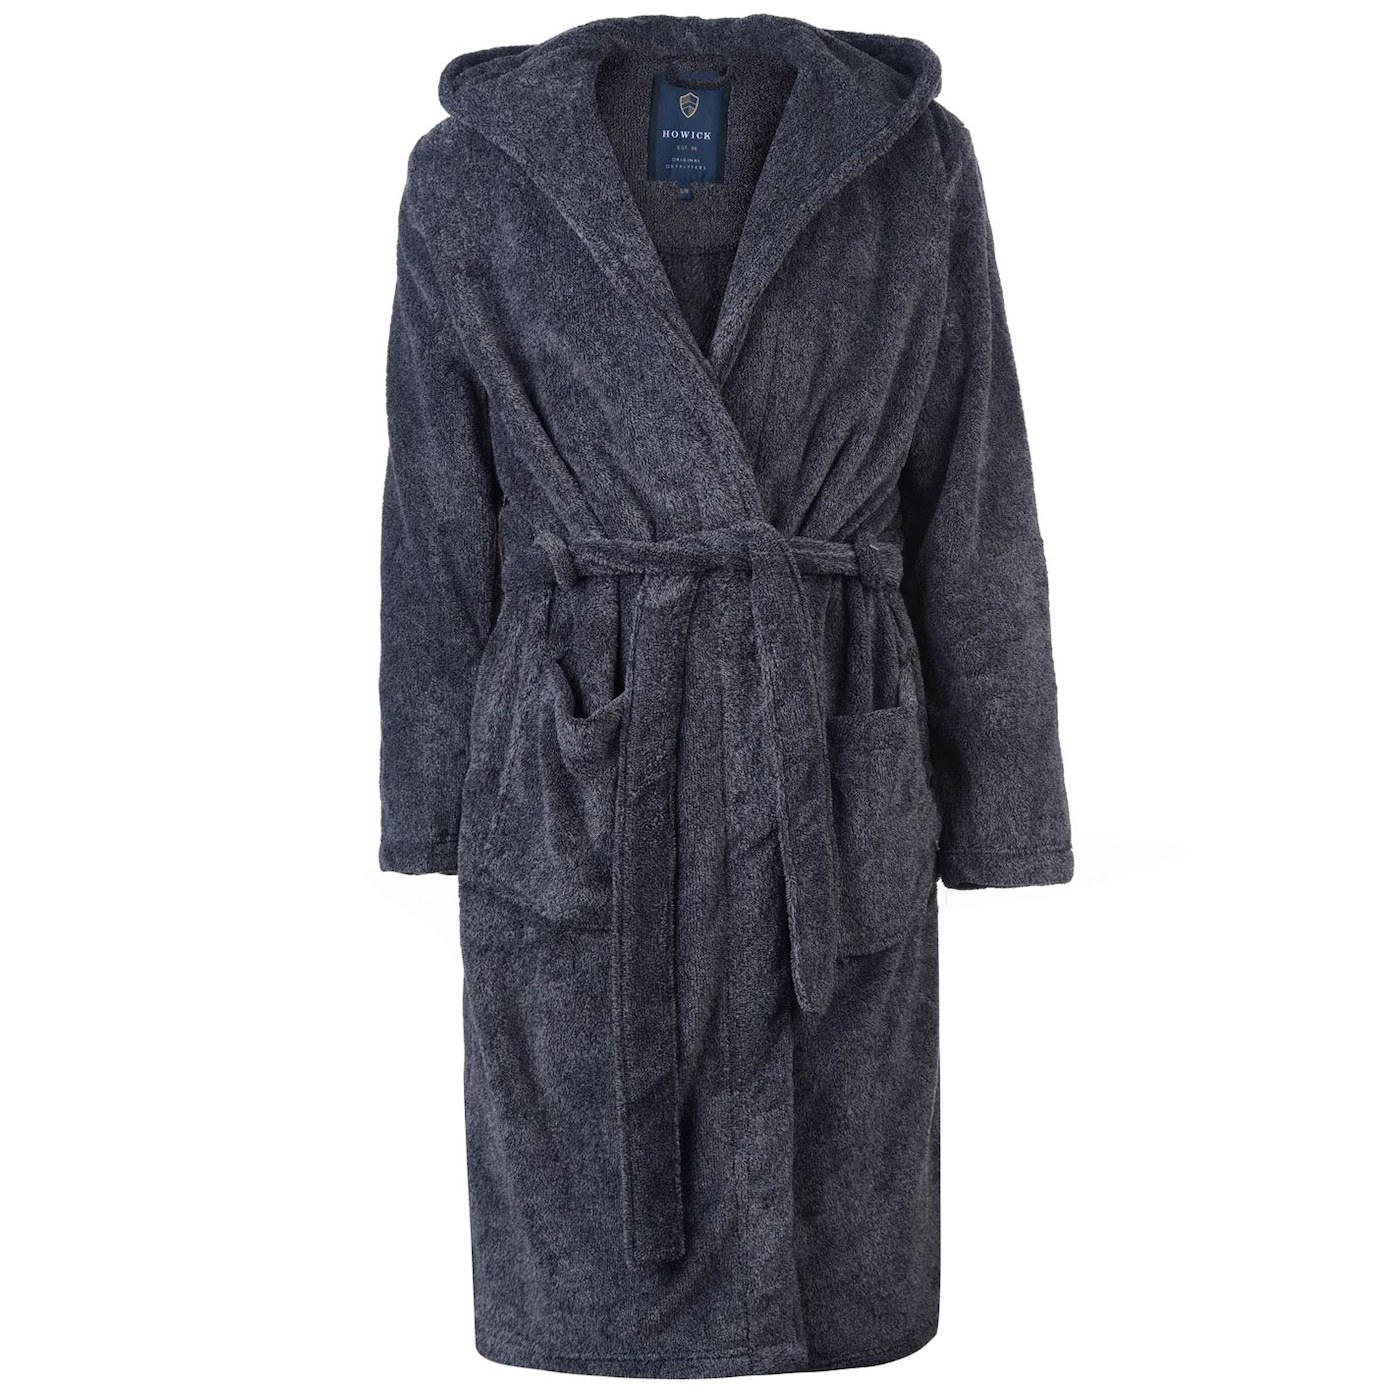 Howick Hooded Charcoal Marl Fleece Dressing Gown